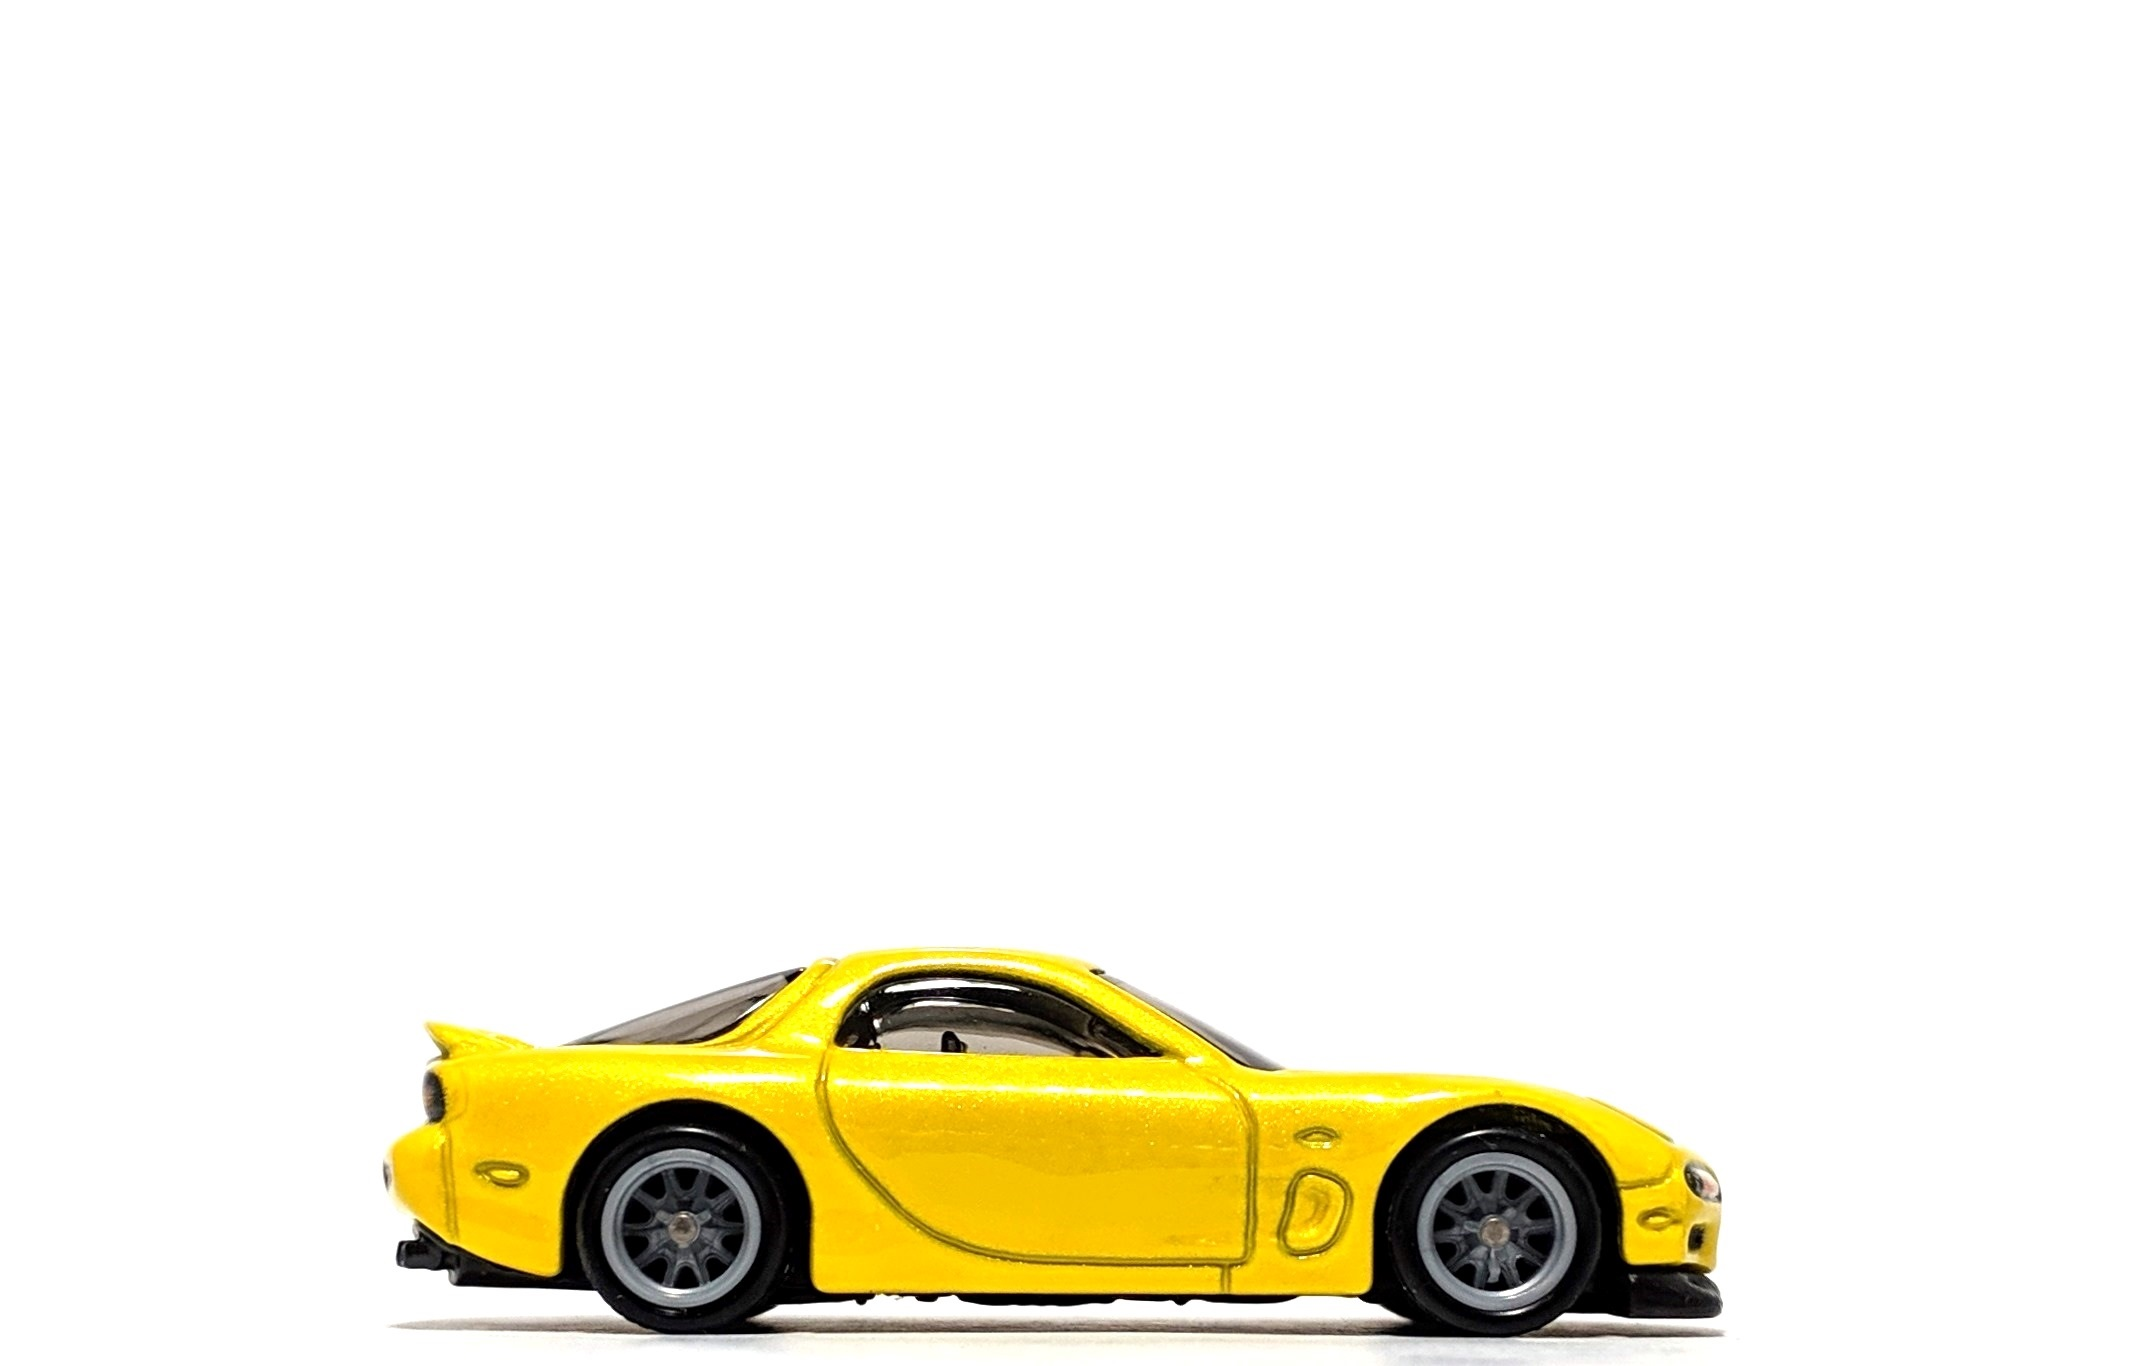 '95 Mazda RX-7, by Hot Wheels (Car Culture: Street Tuners)